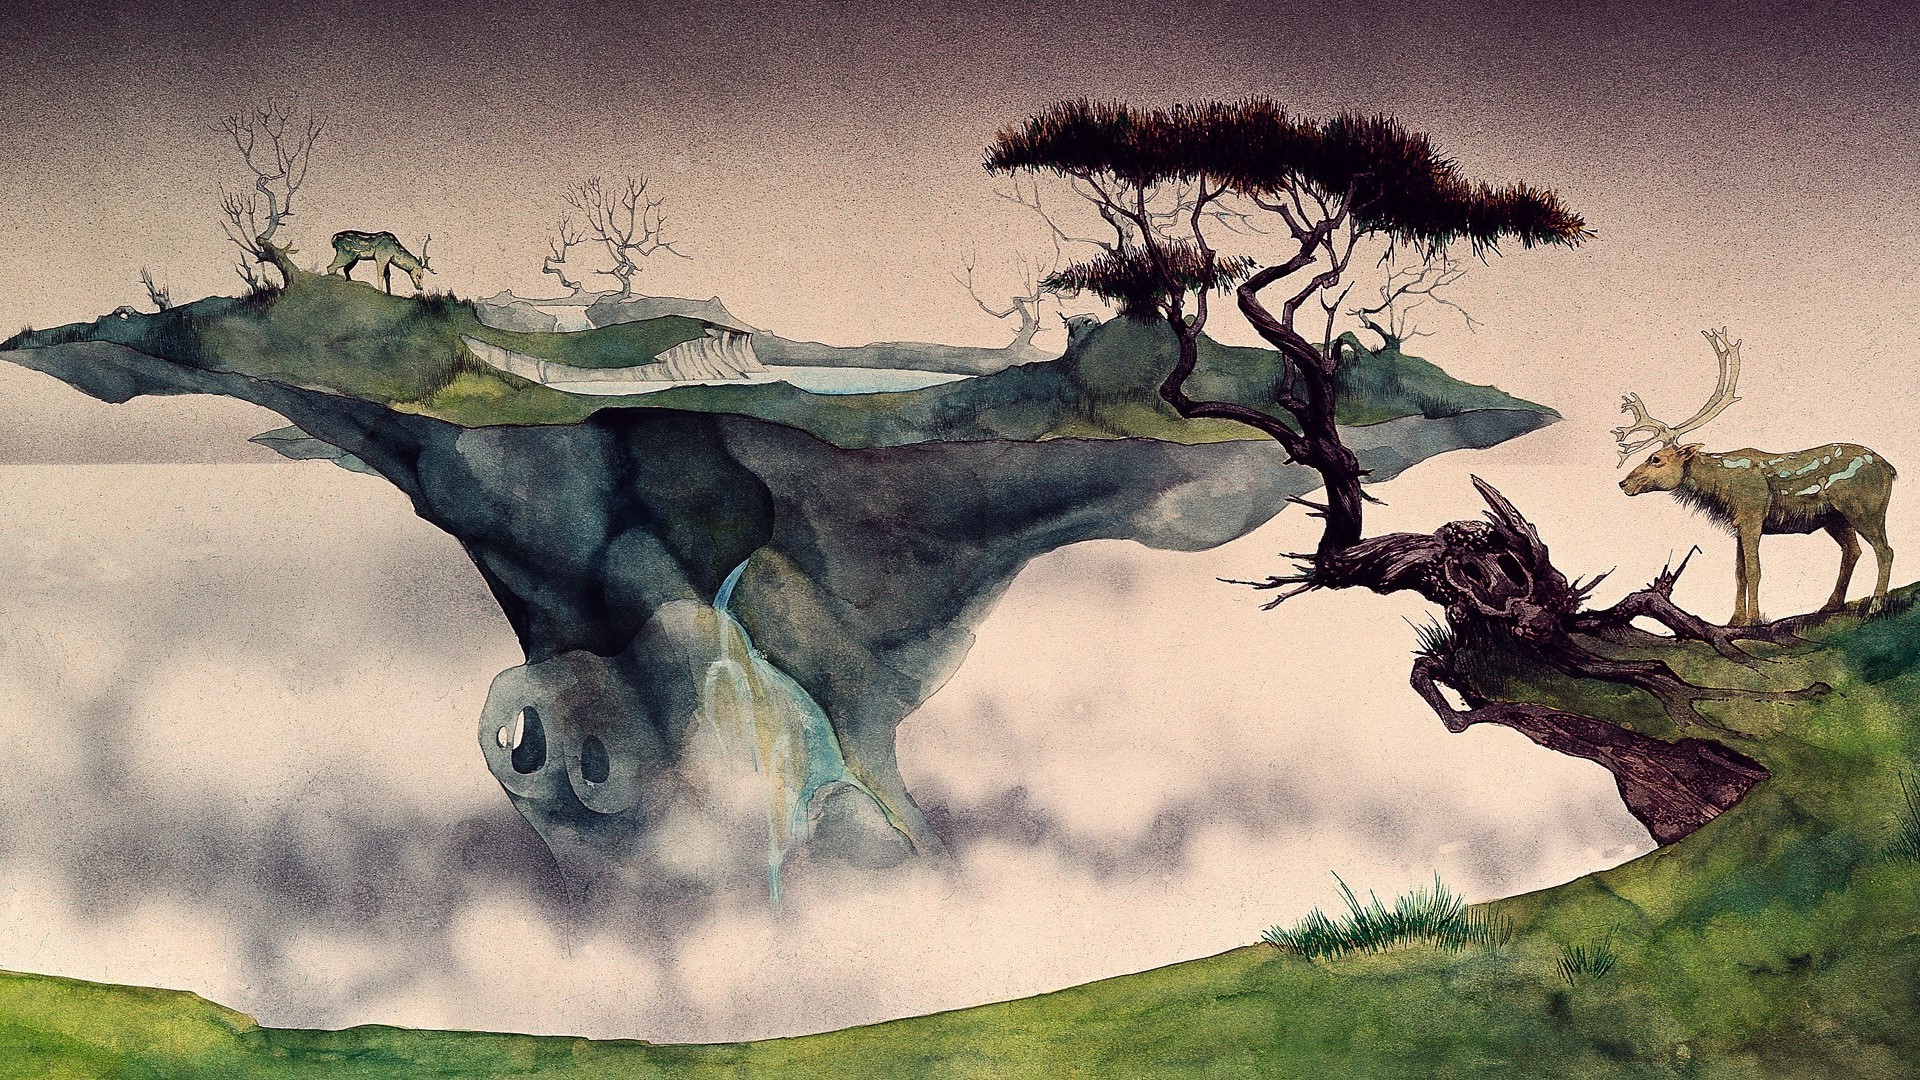 1920x1080 Wallpaper Trees, Drawing, Painting, Illustration, Deer, Animals